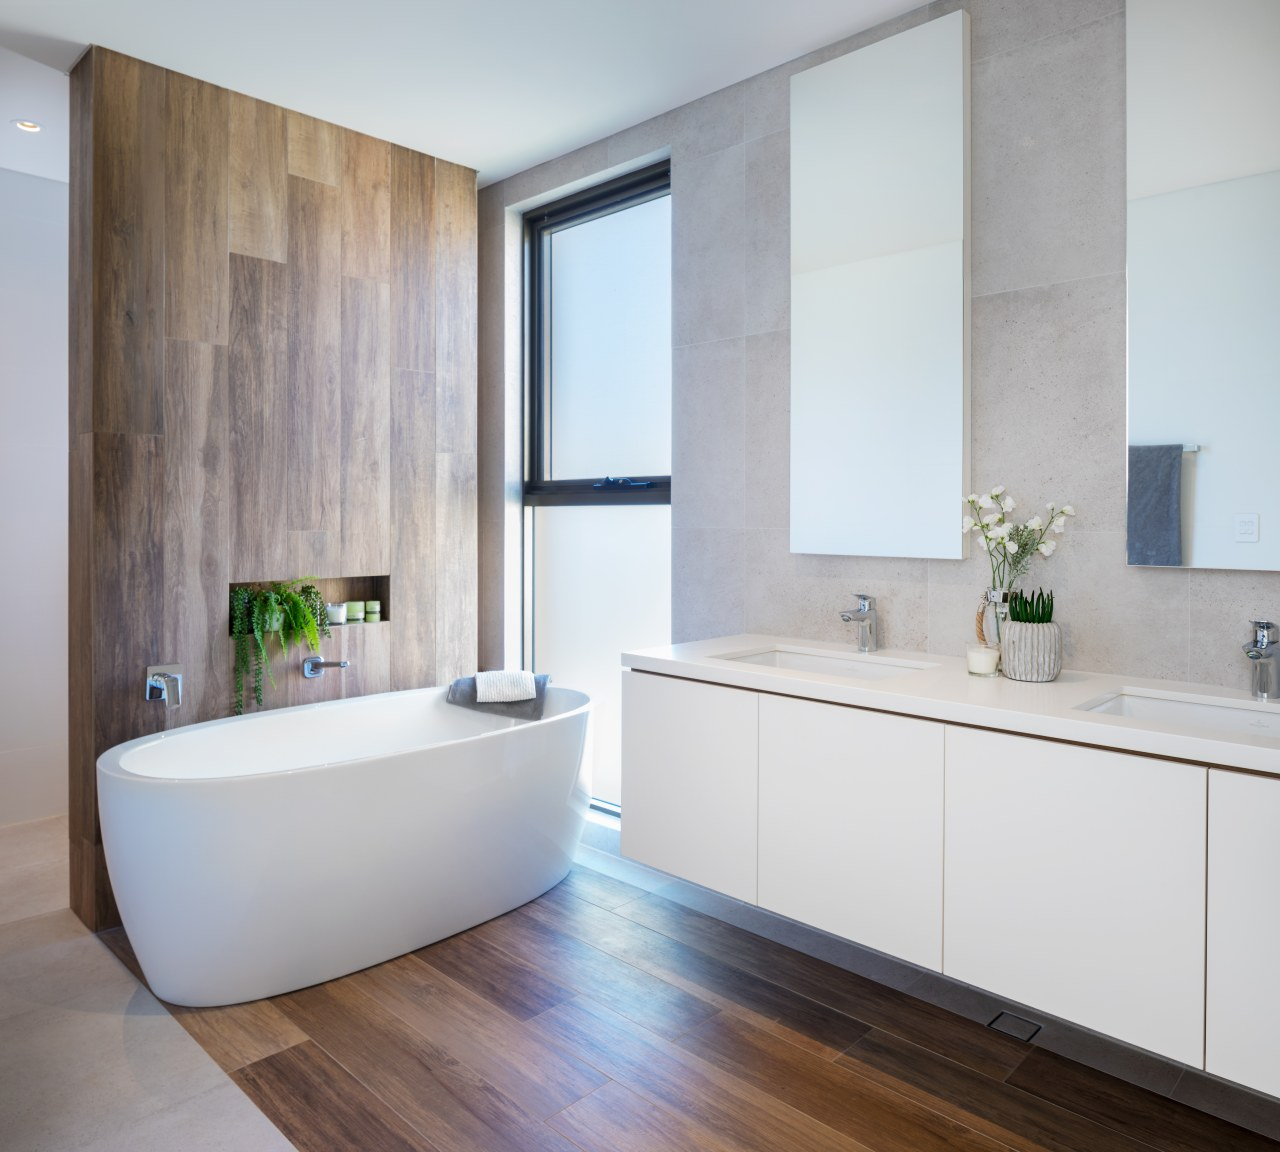 This bathroom continues the use of natural materials architecture, bathroom, bathroom accessory, bathroom cabinet, bathtub, beige, building, cabinetry, ceiling, ceramic, floor, flooring, furniture, hardwood, home, house, interior design, material property, plumbing fixture, property, real estate, room, sink, tap, tile, wall, wood flooring, gray